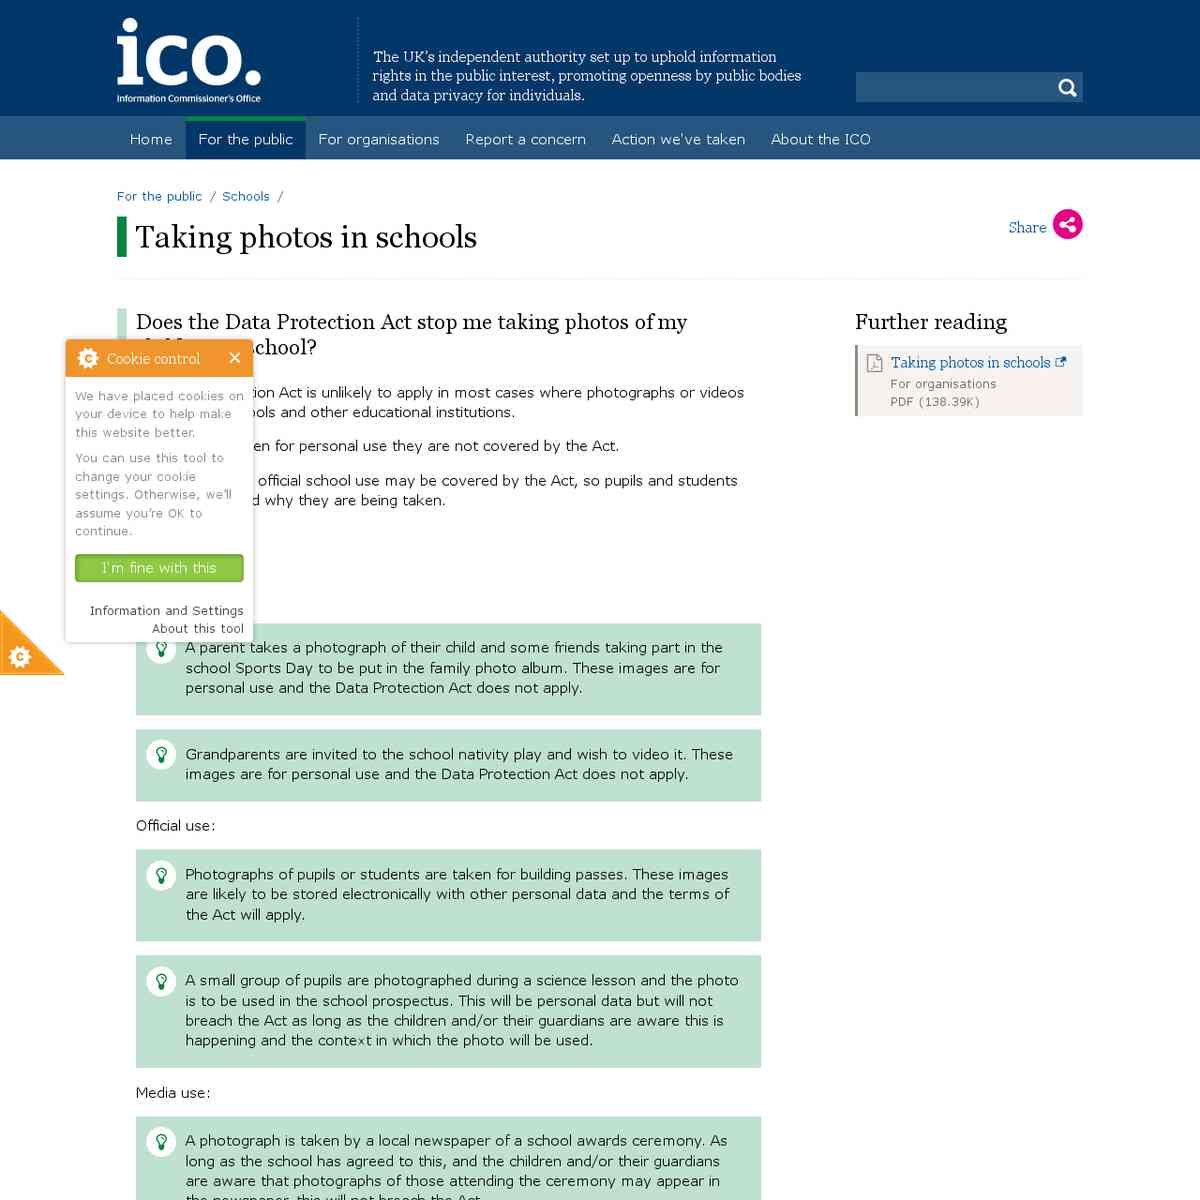 ico.org.uk/for-the-public/schools/photos/